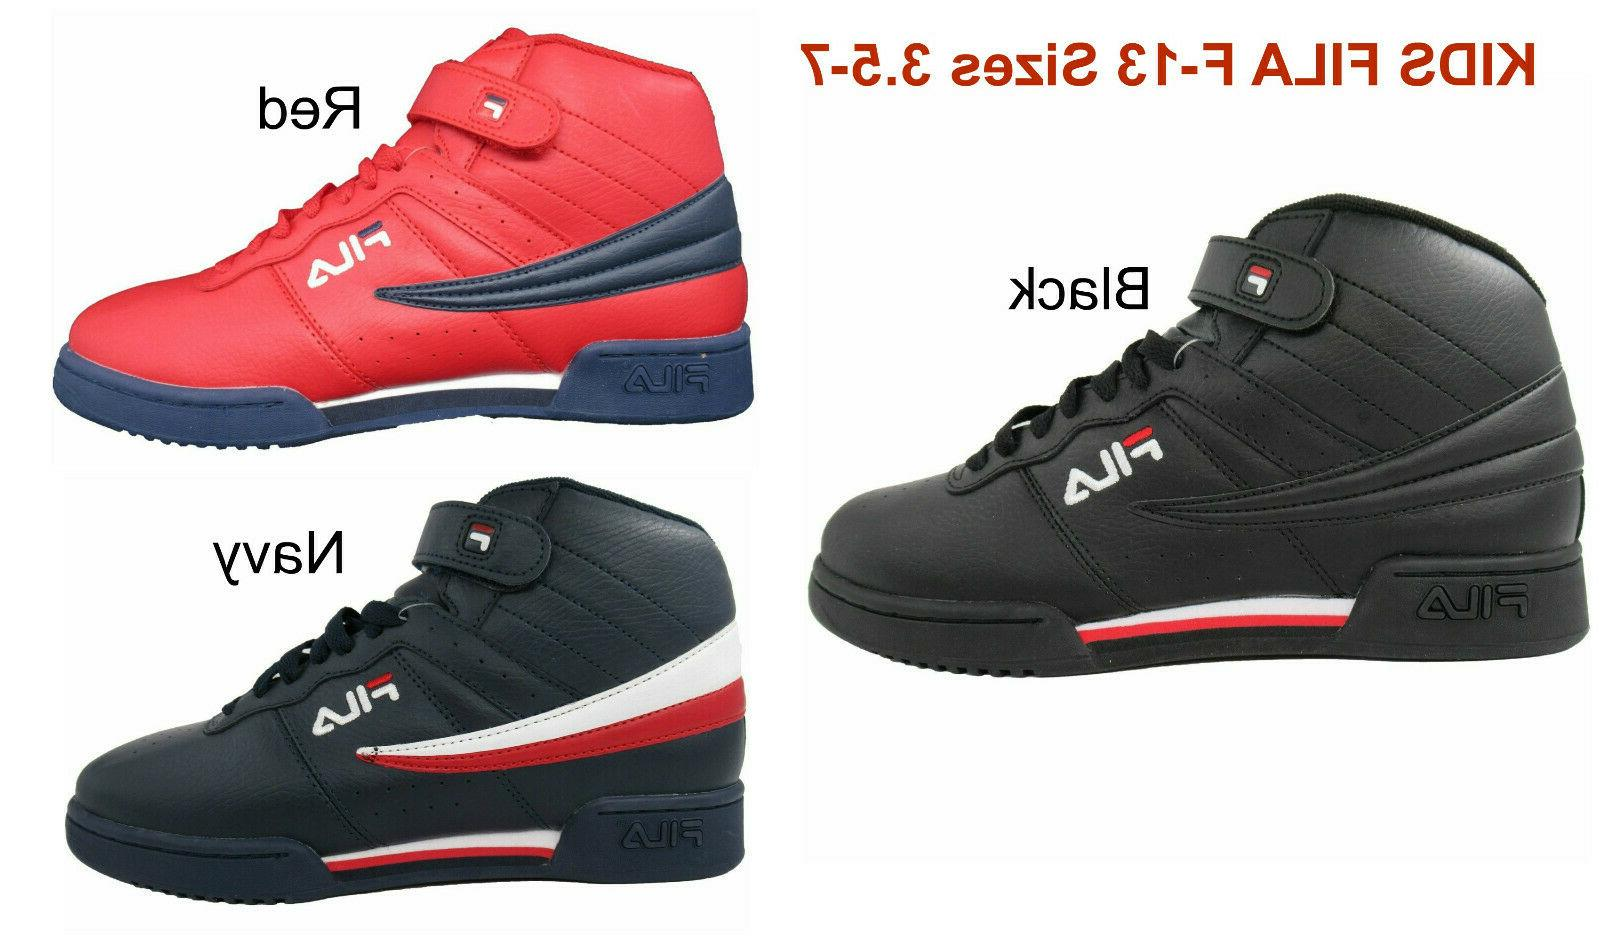 kids f13 youth unisex leather sneakers hi